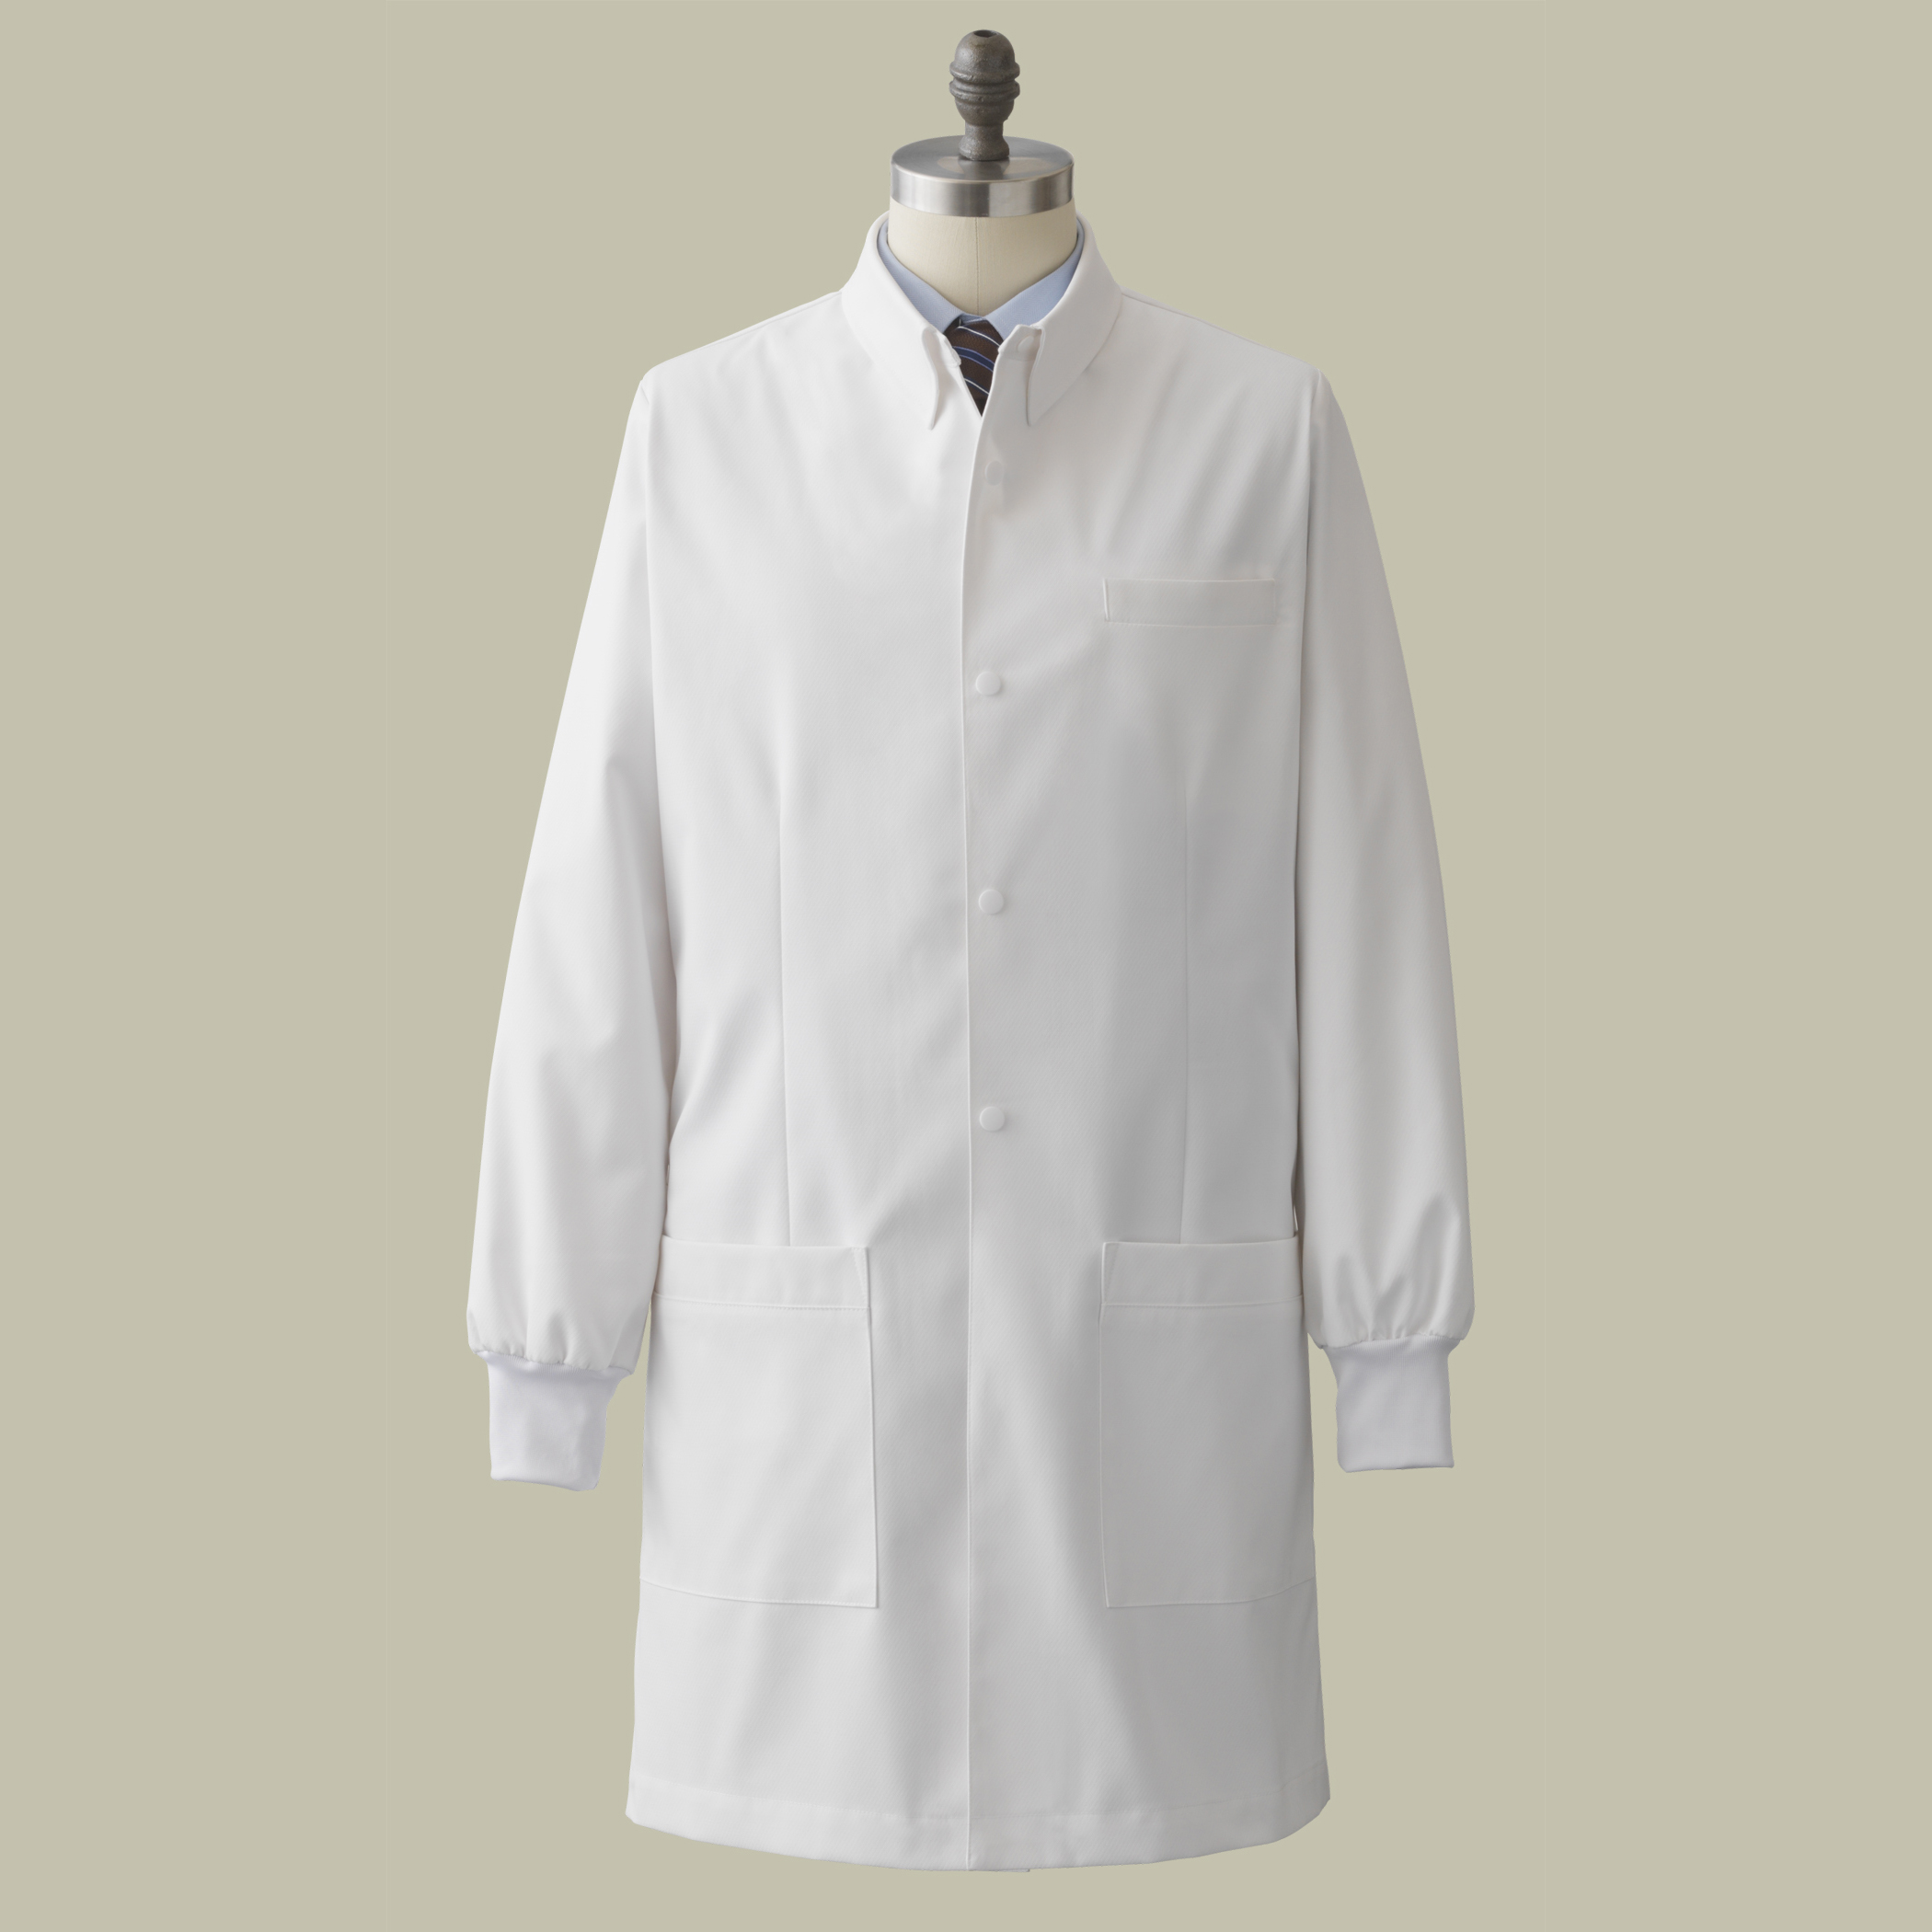 Medelita Fauchard Men's Lab Coat